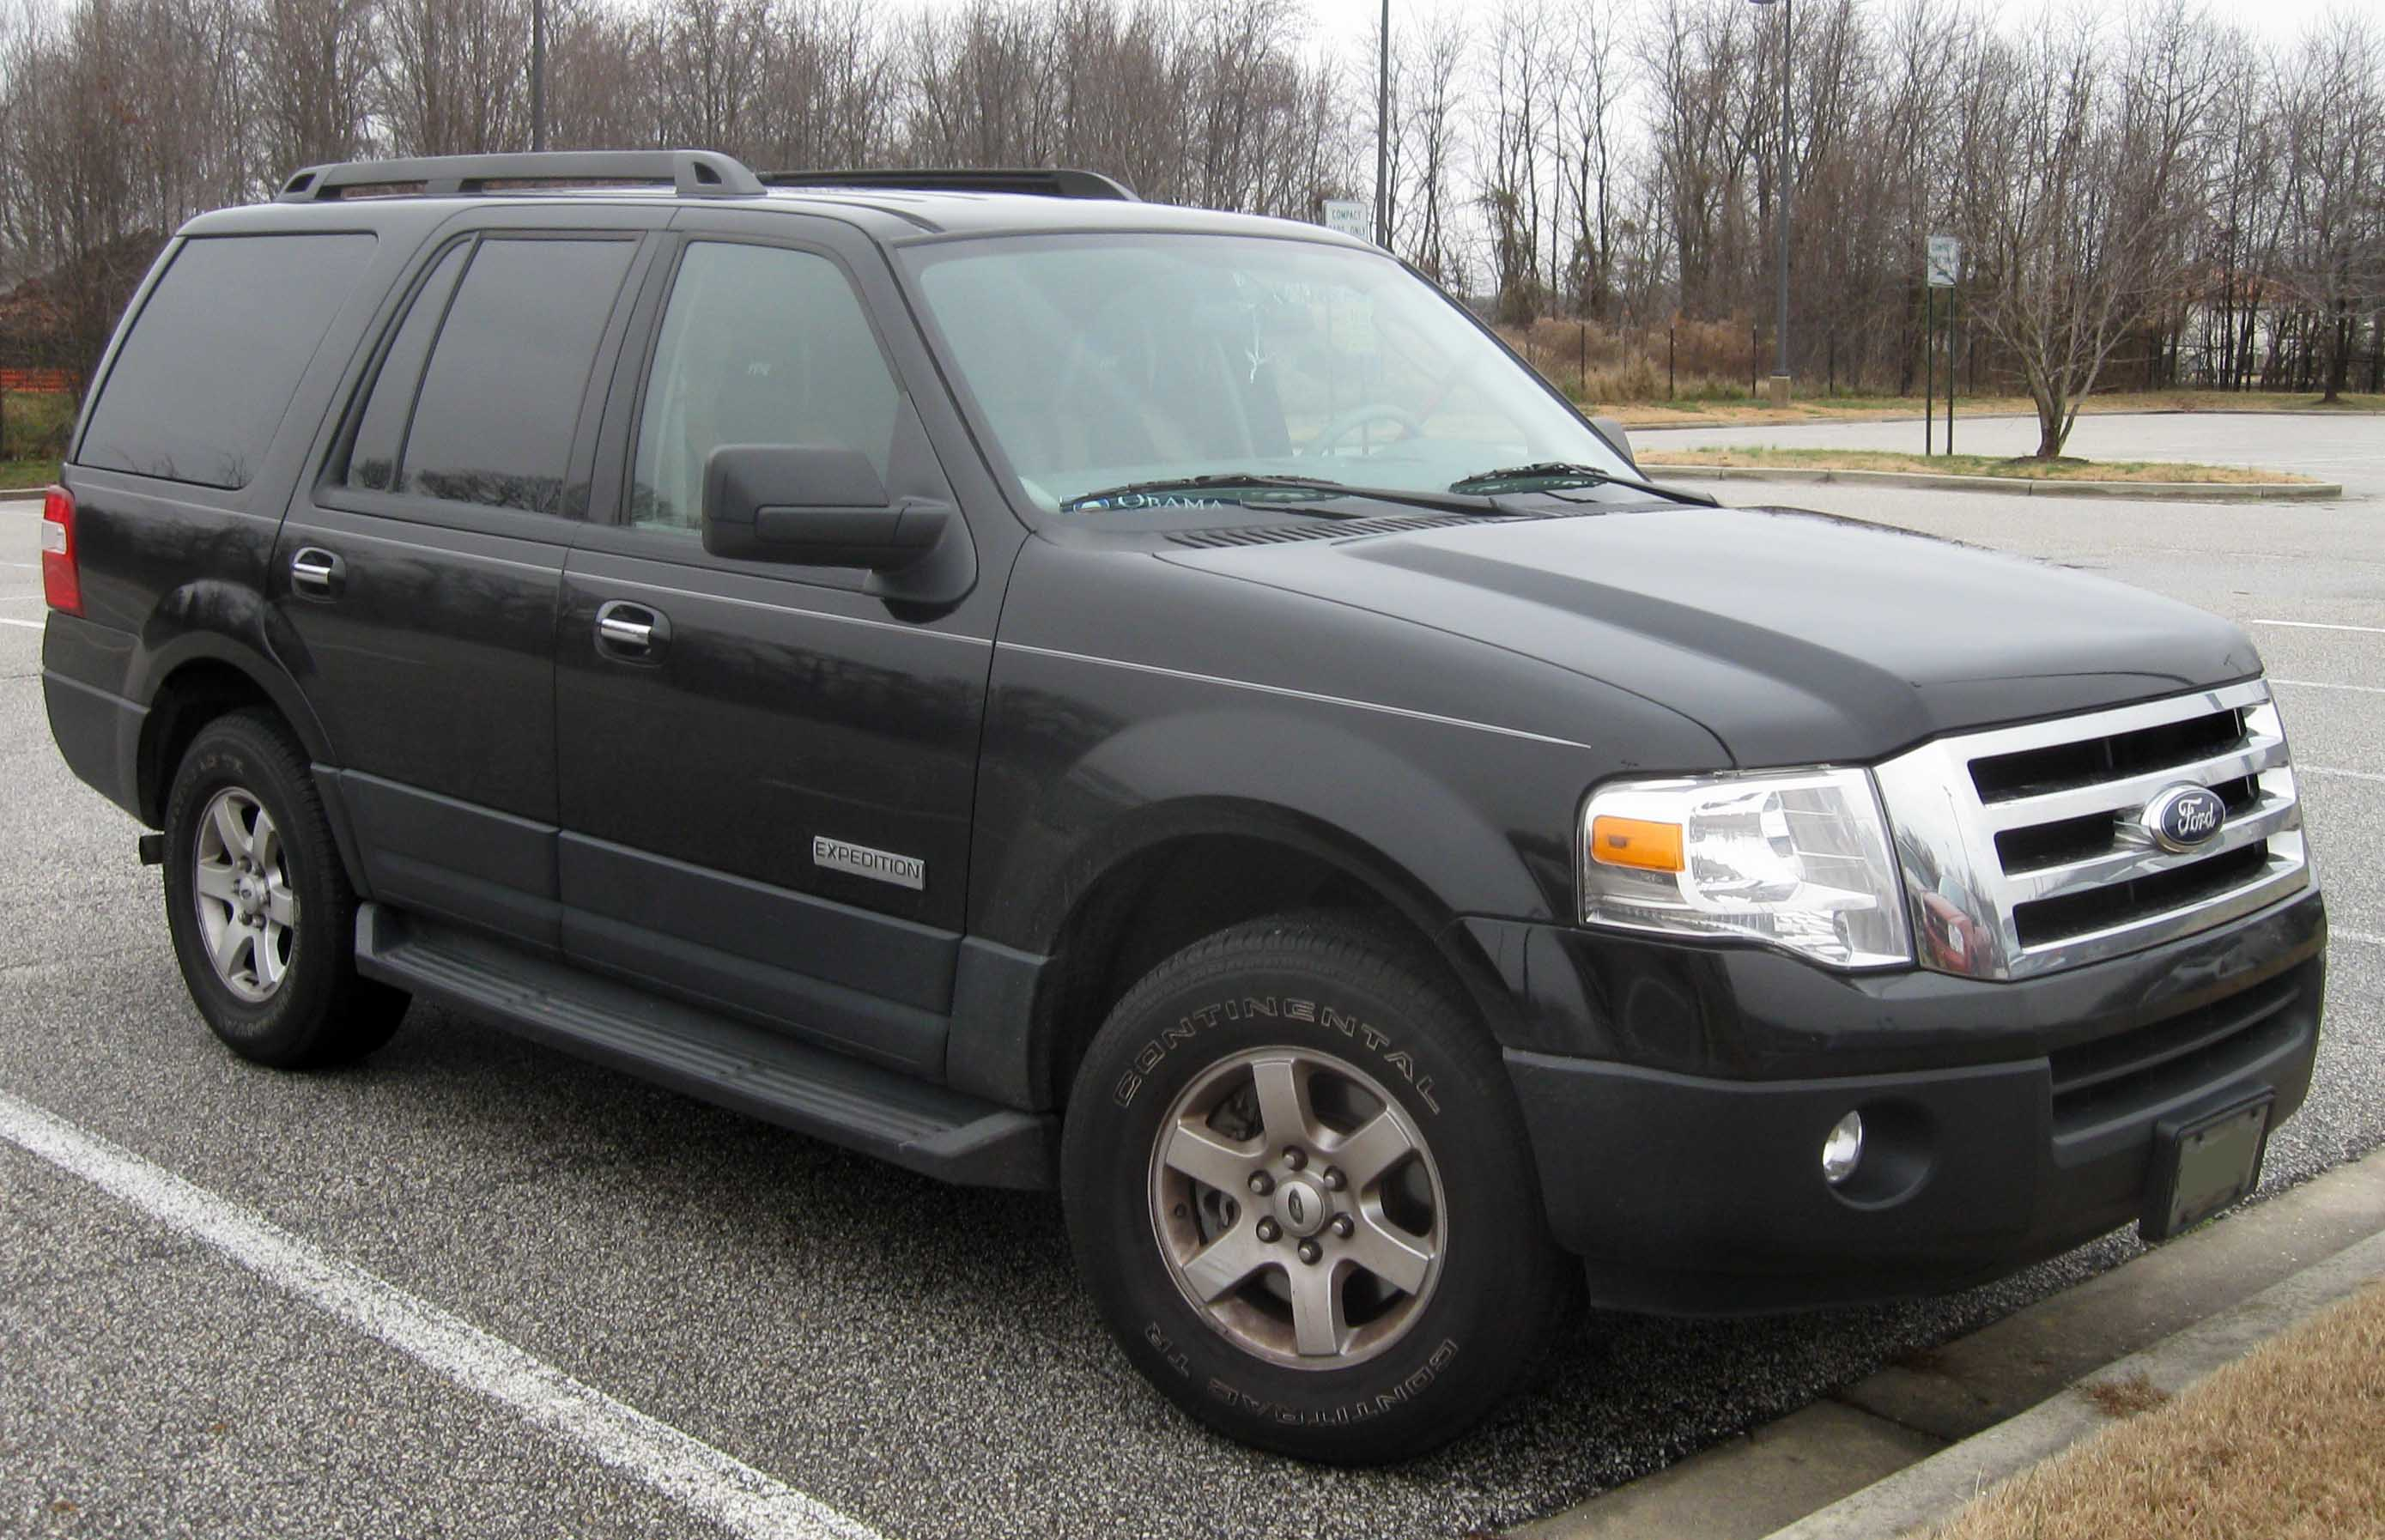 File:07-09 Ford Expedition XLT.jpg - Wikimedia Commons